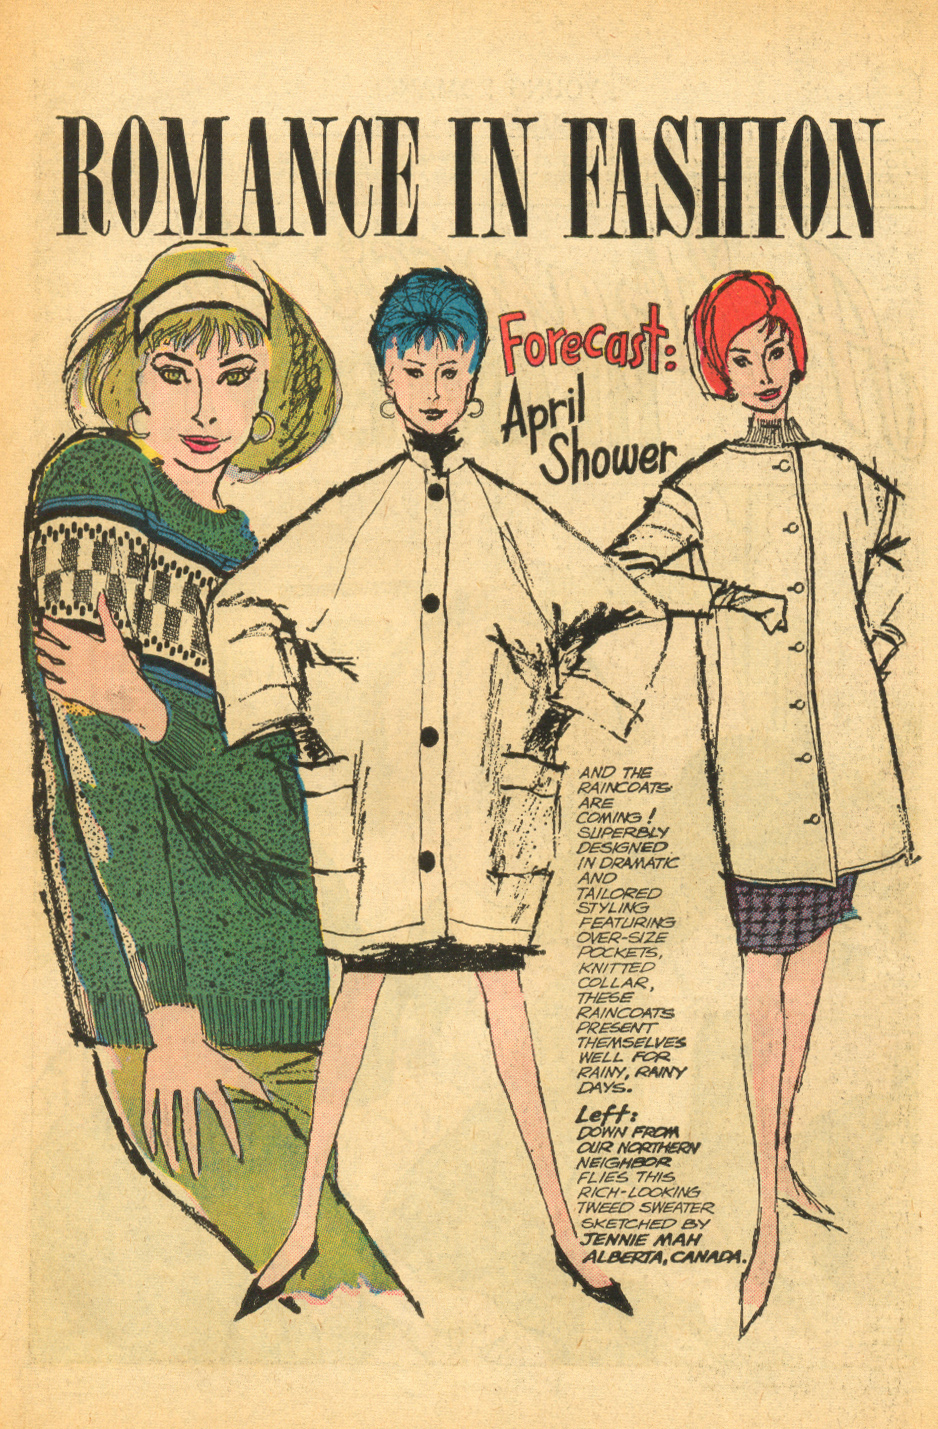 I don't know about where you are, but I could definitely use one of these raincoats this drizzly April!